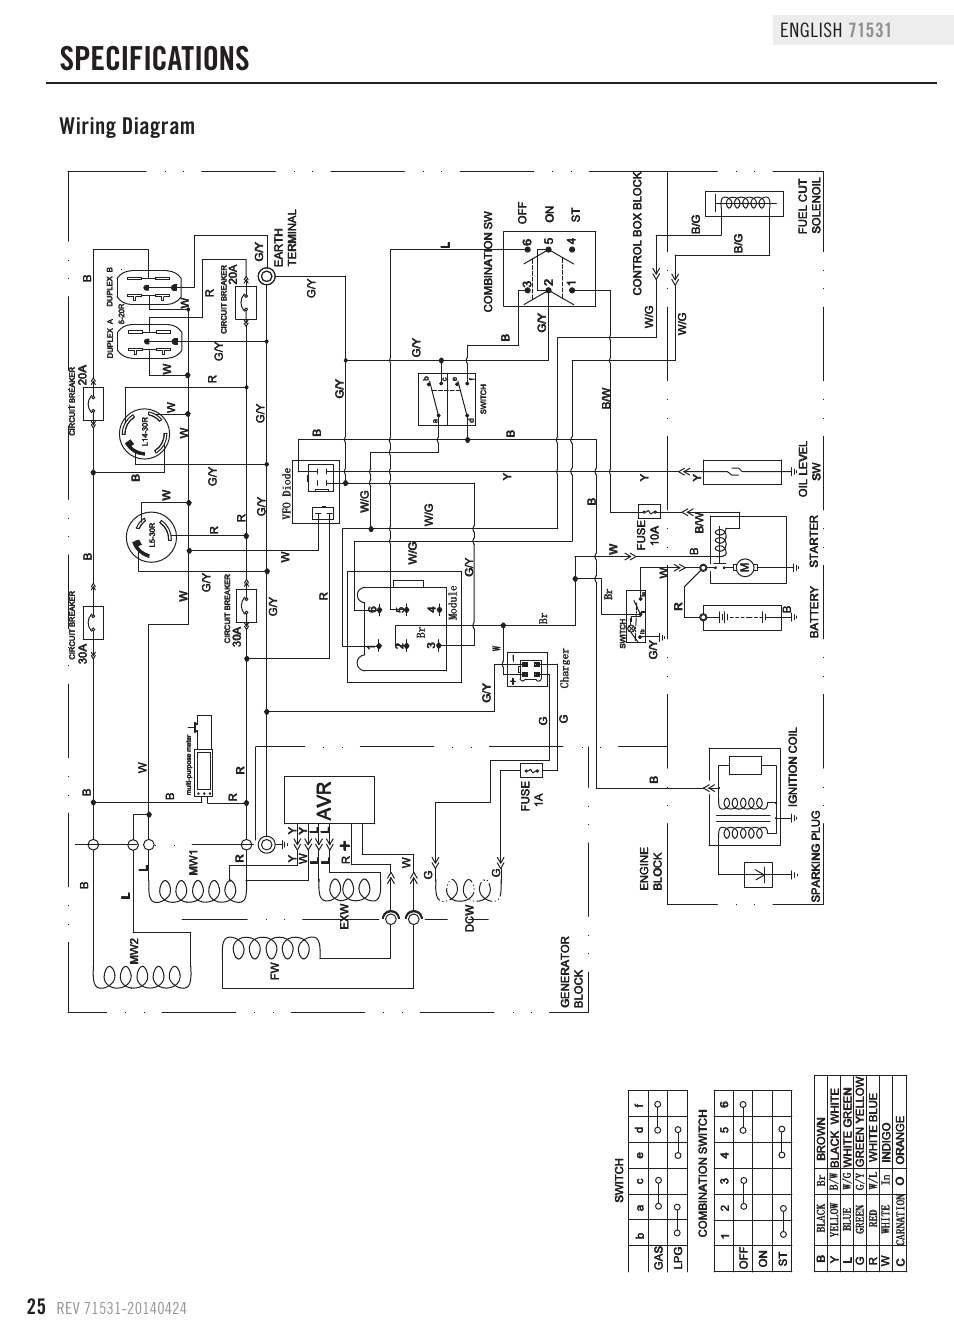 Specifications  Wiring Diagram